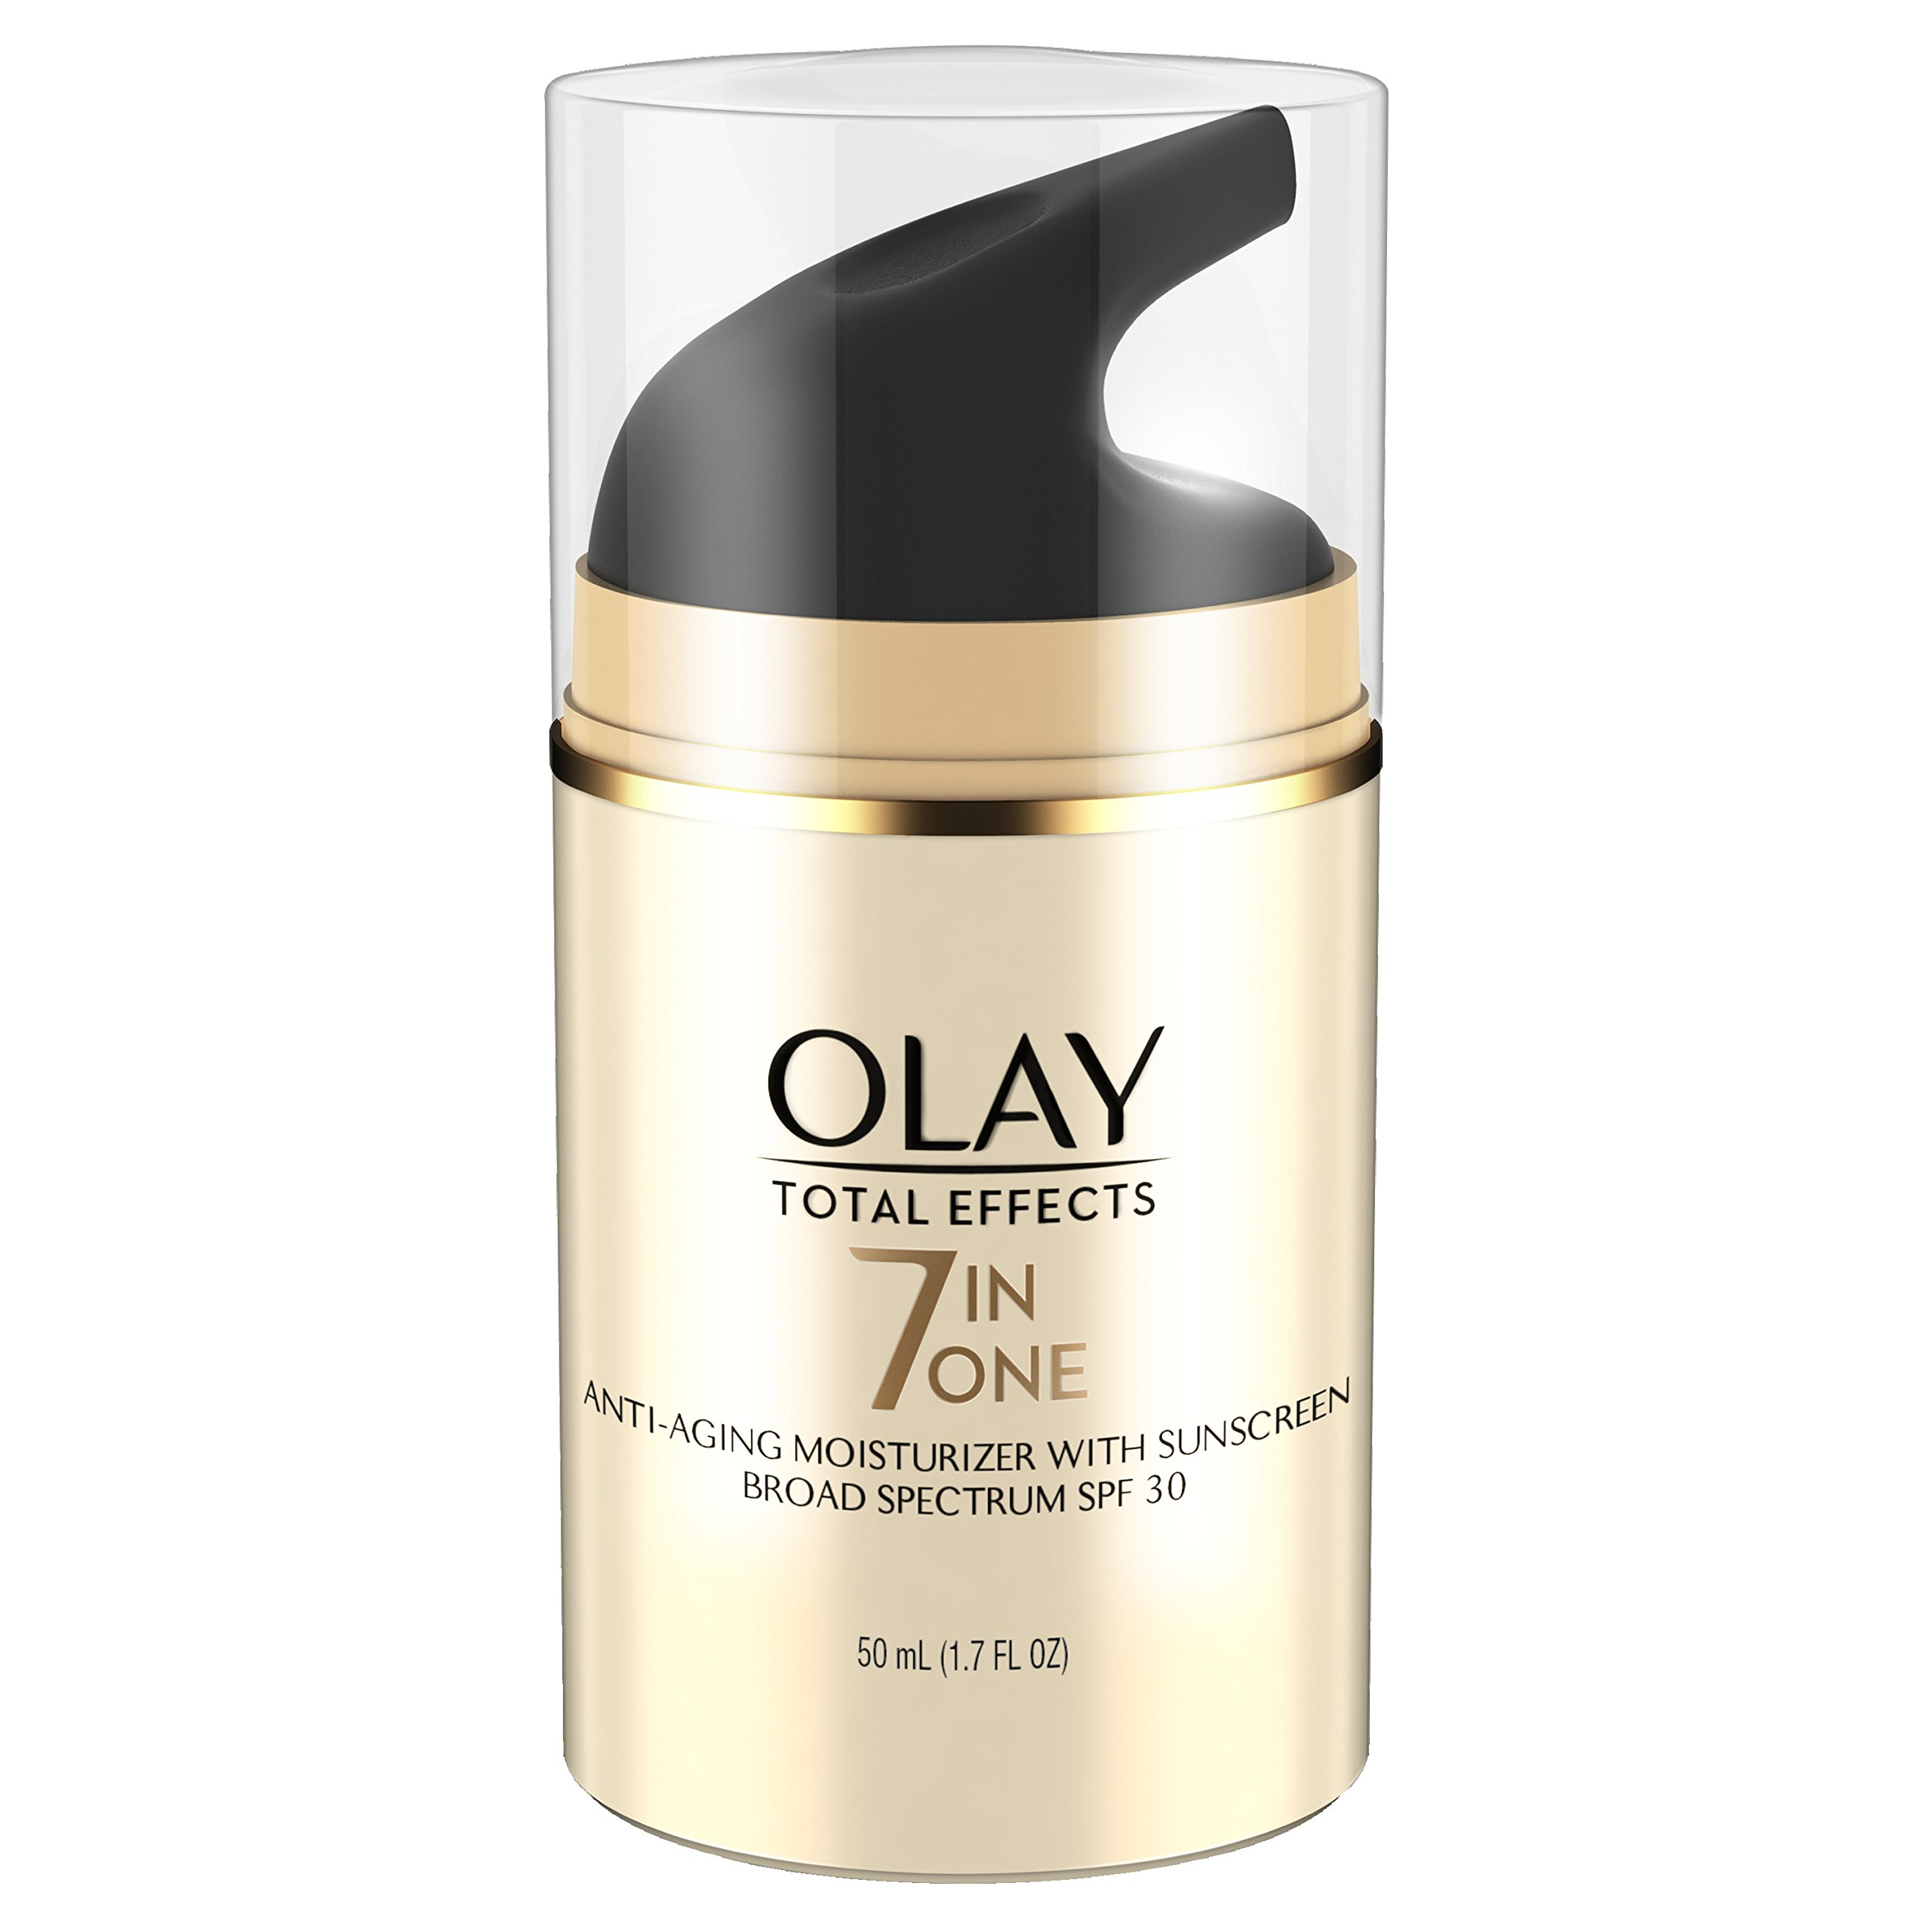 Olay Total Effects 7-in-1 Anti-Aging Daily Face Moisturizer With SPF 30, 1.7 fl oz